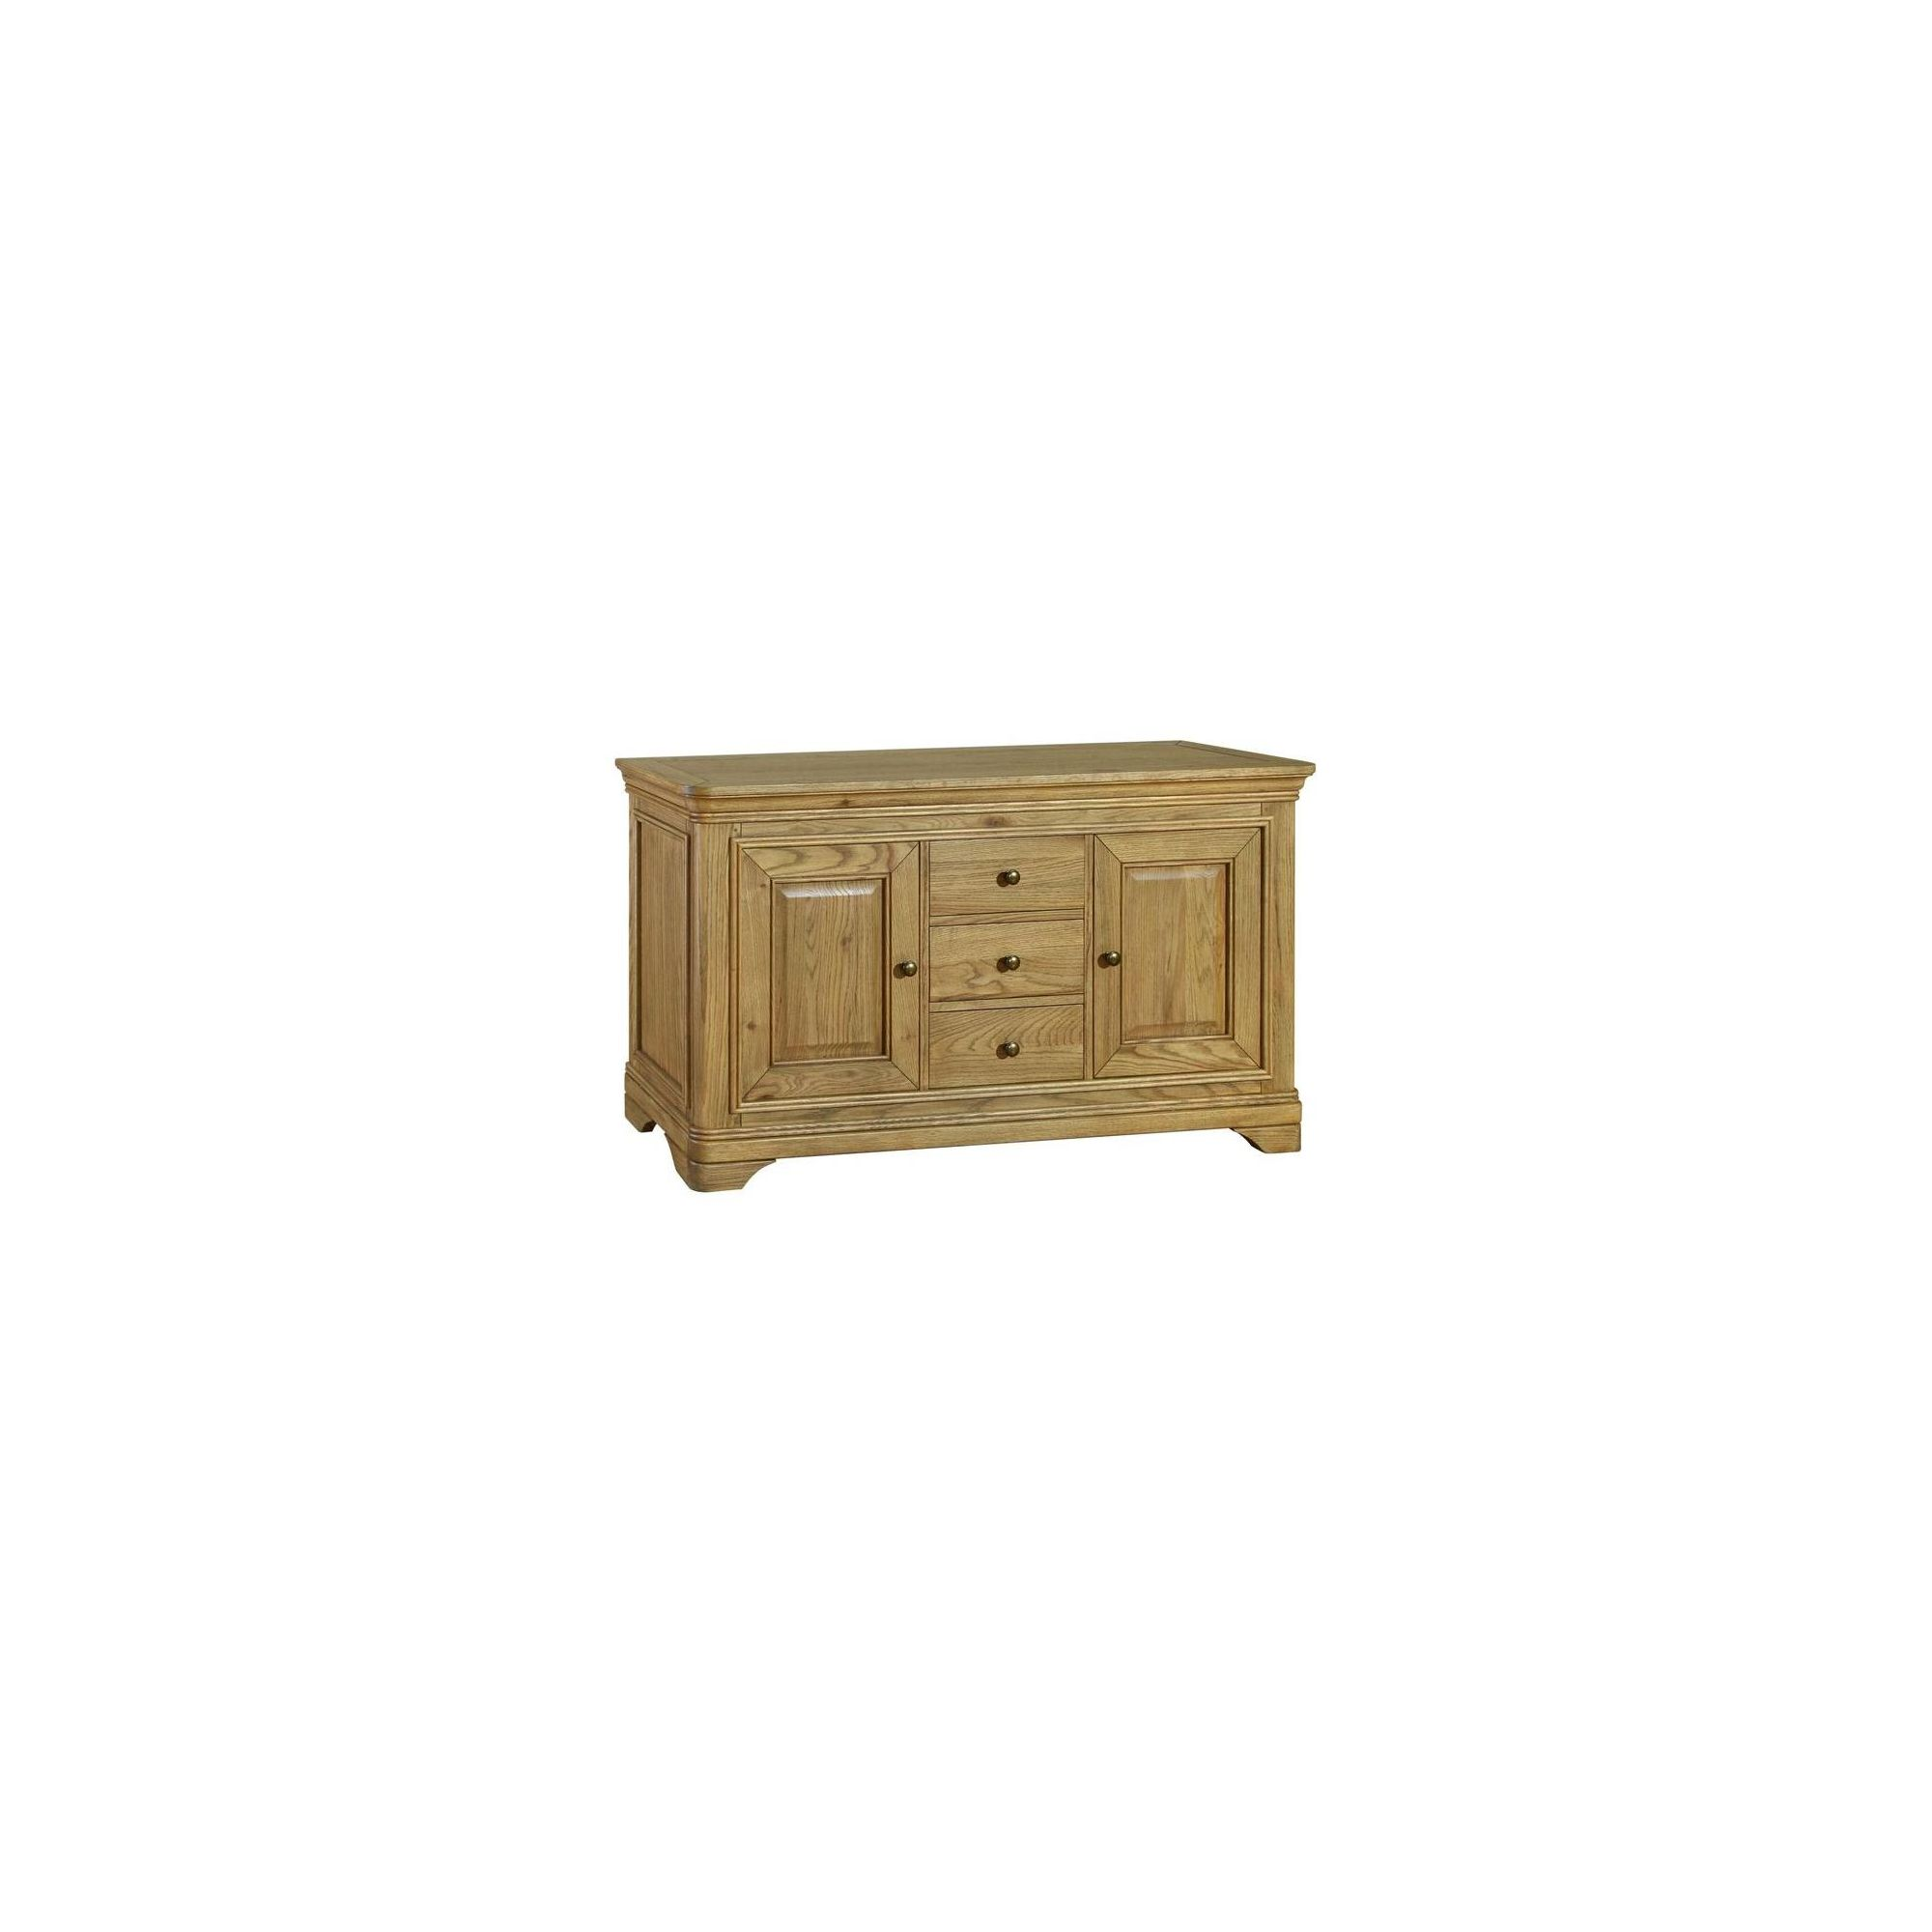 Kelburn Furniture Loire Large Sideboard in Light Oak Stain and Satin Lacquer at Tesco Direct